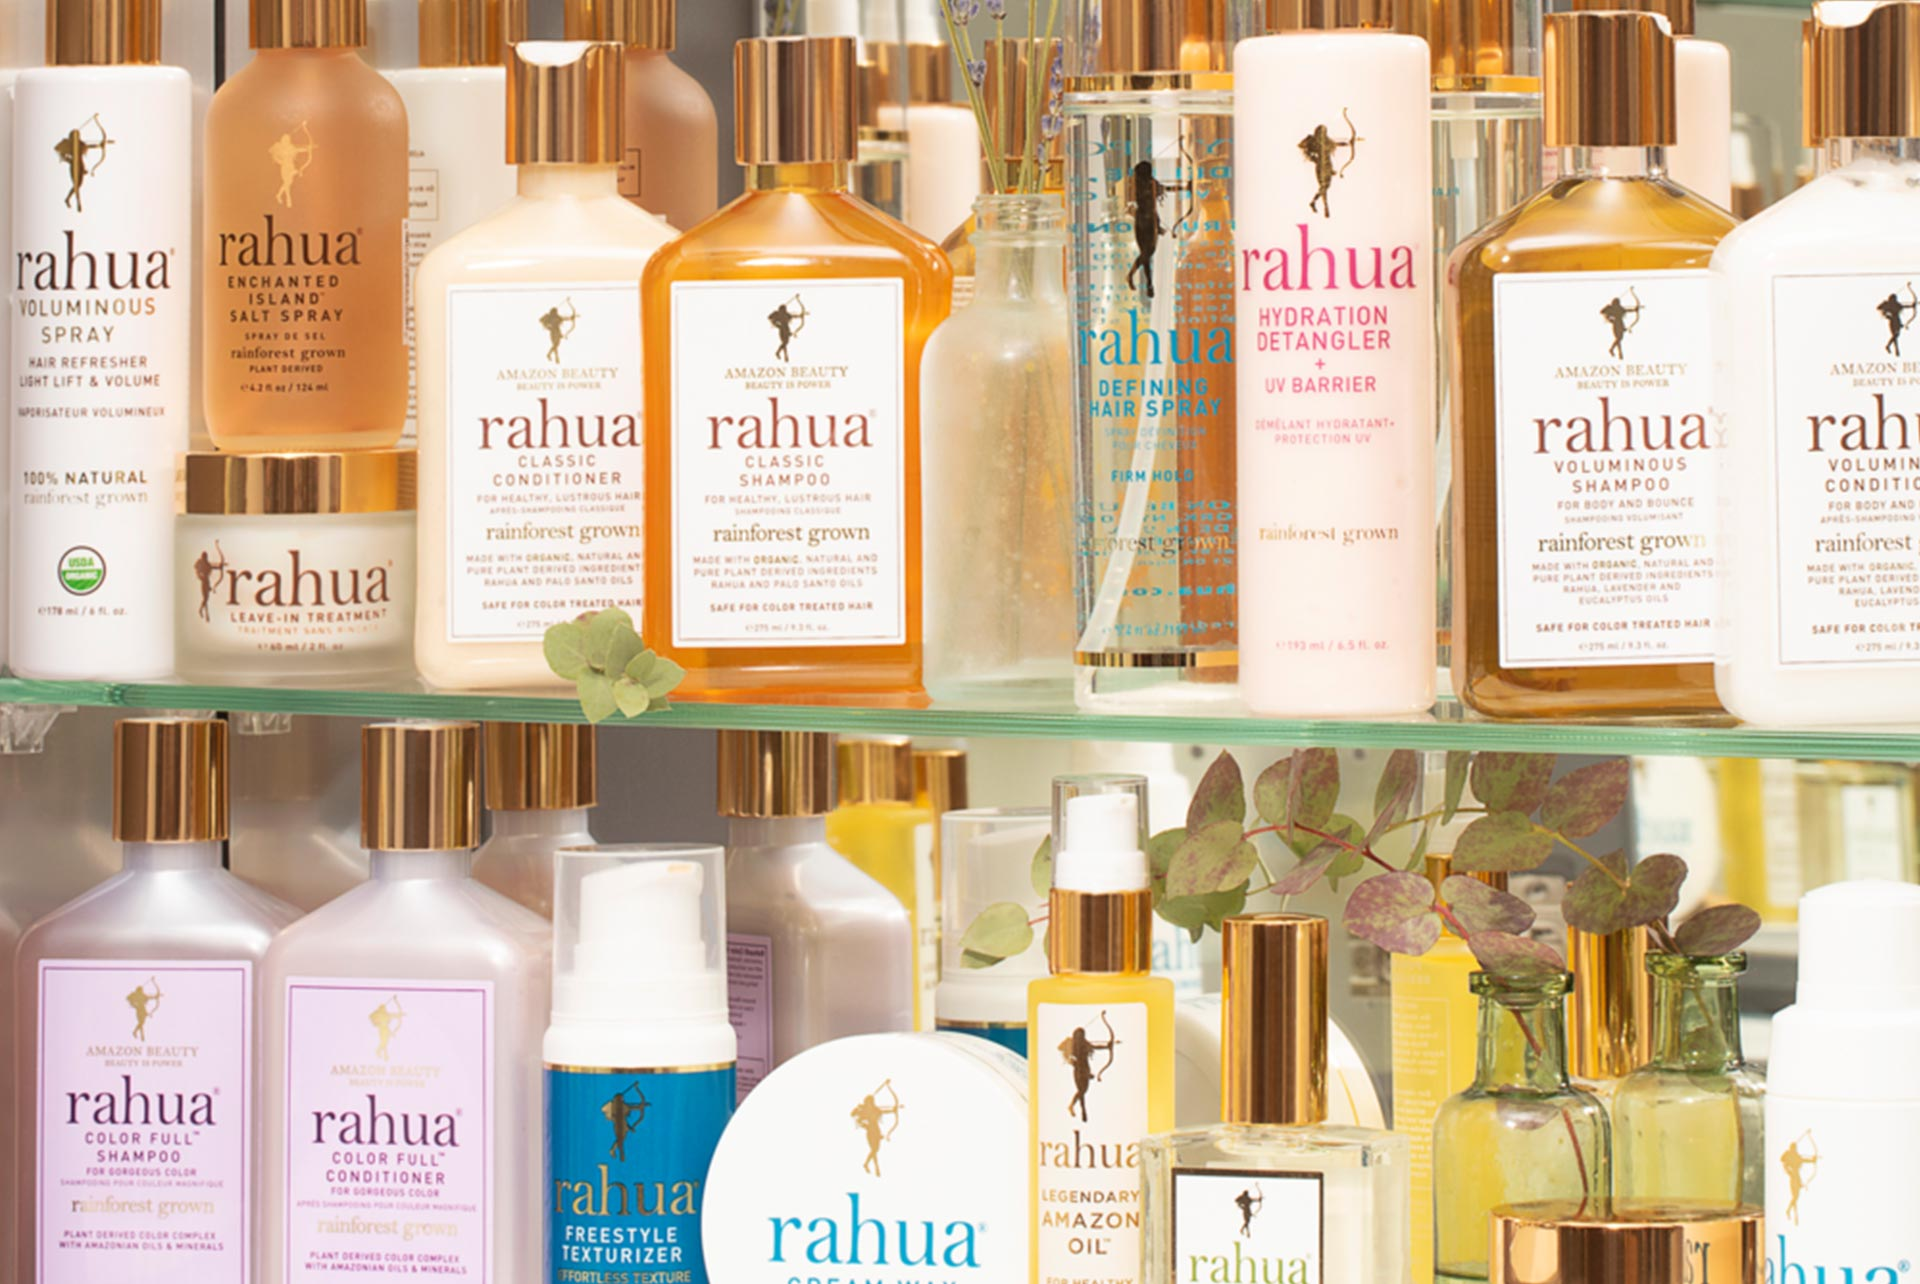 Is Rahua Cruelty-Free & Vegan?